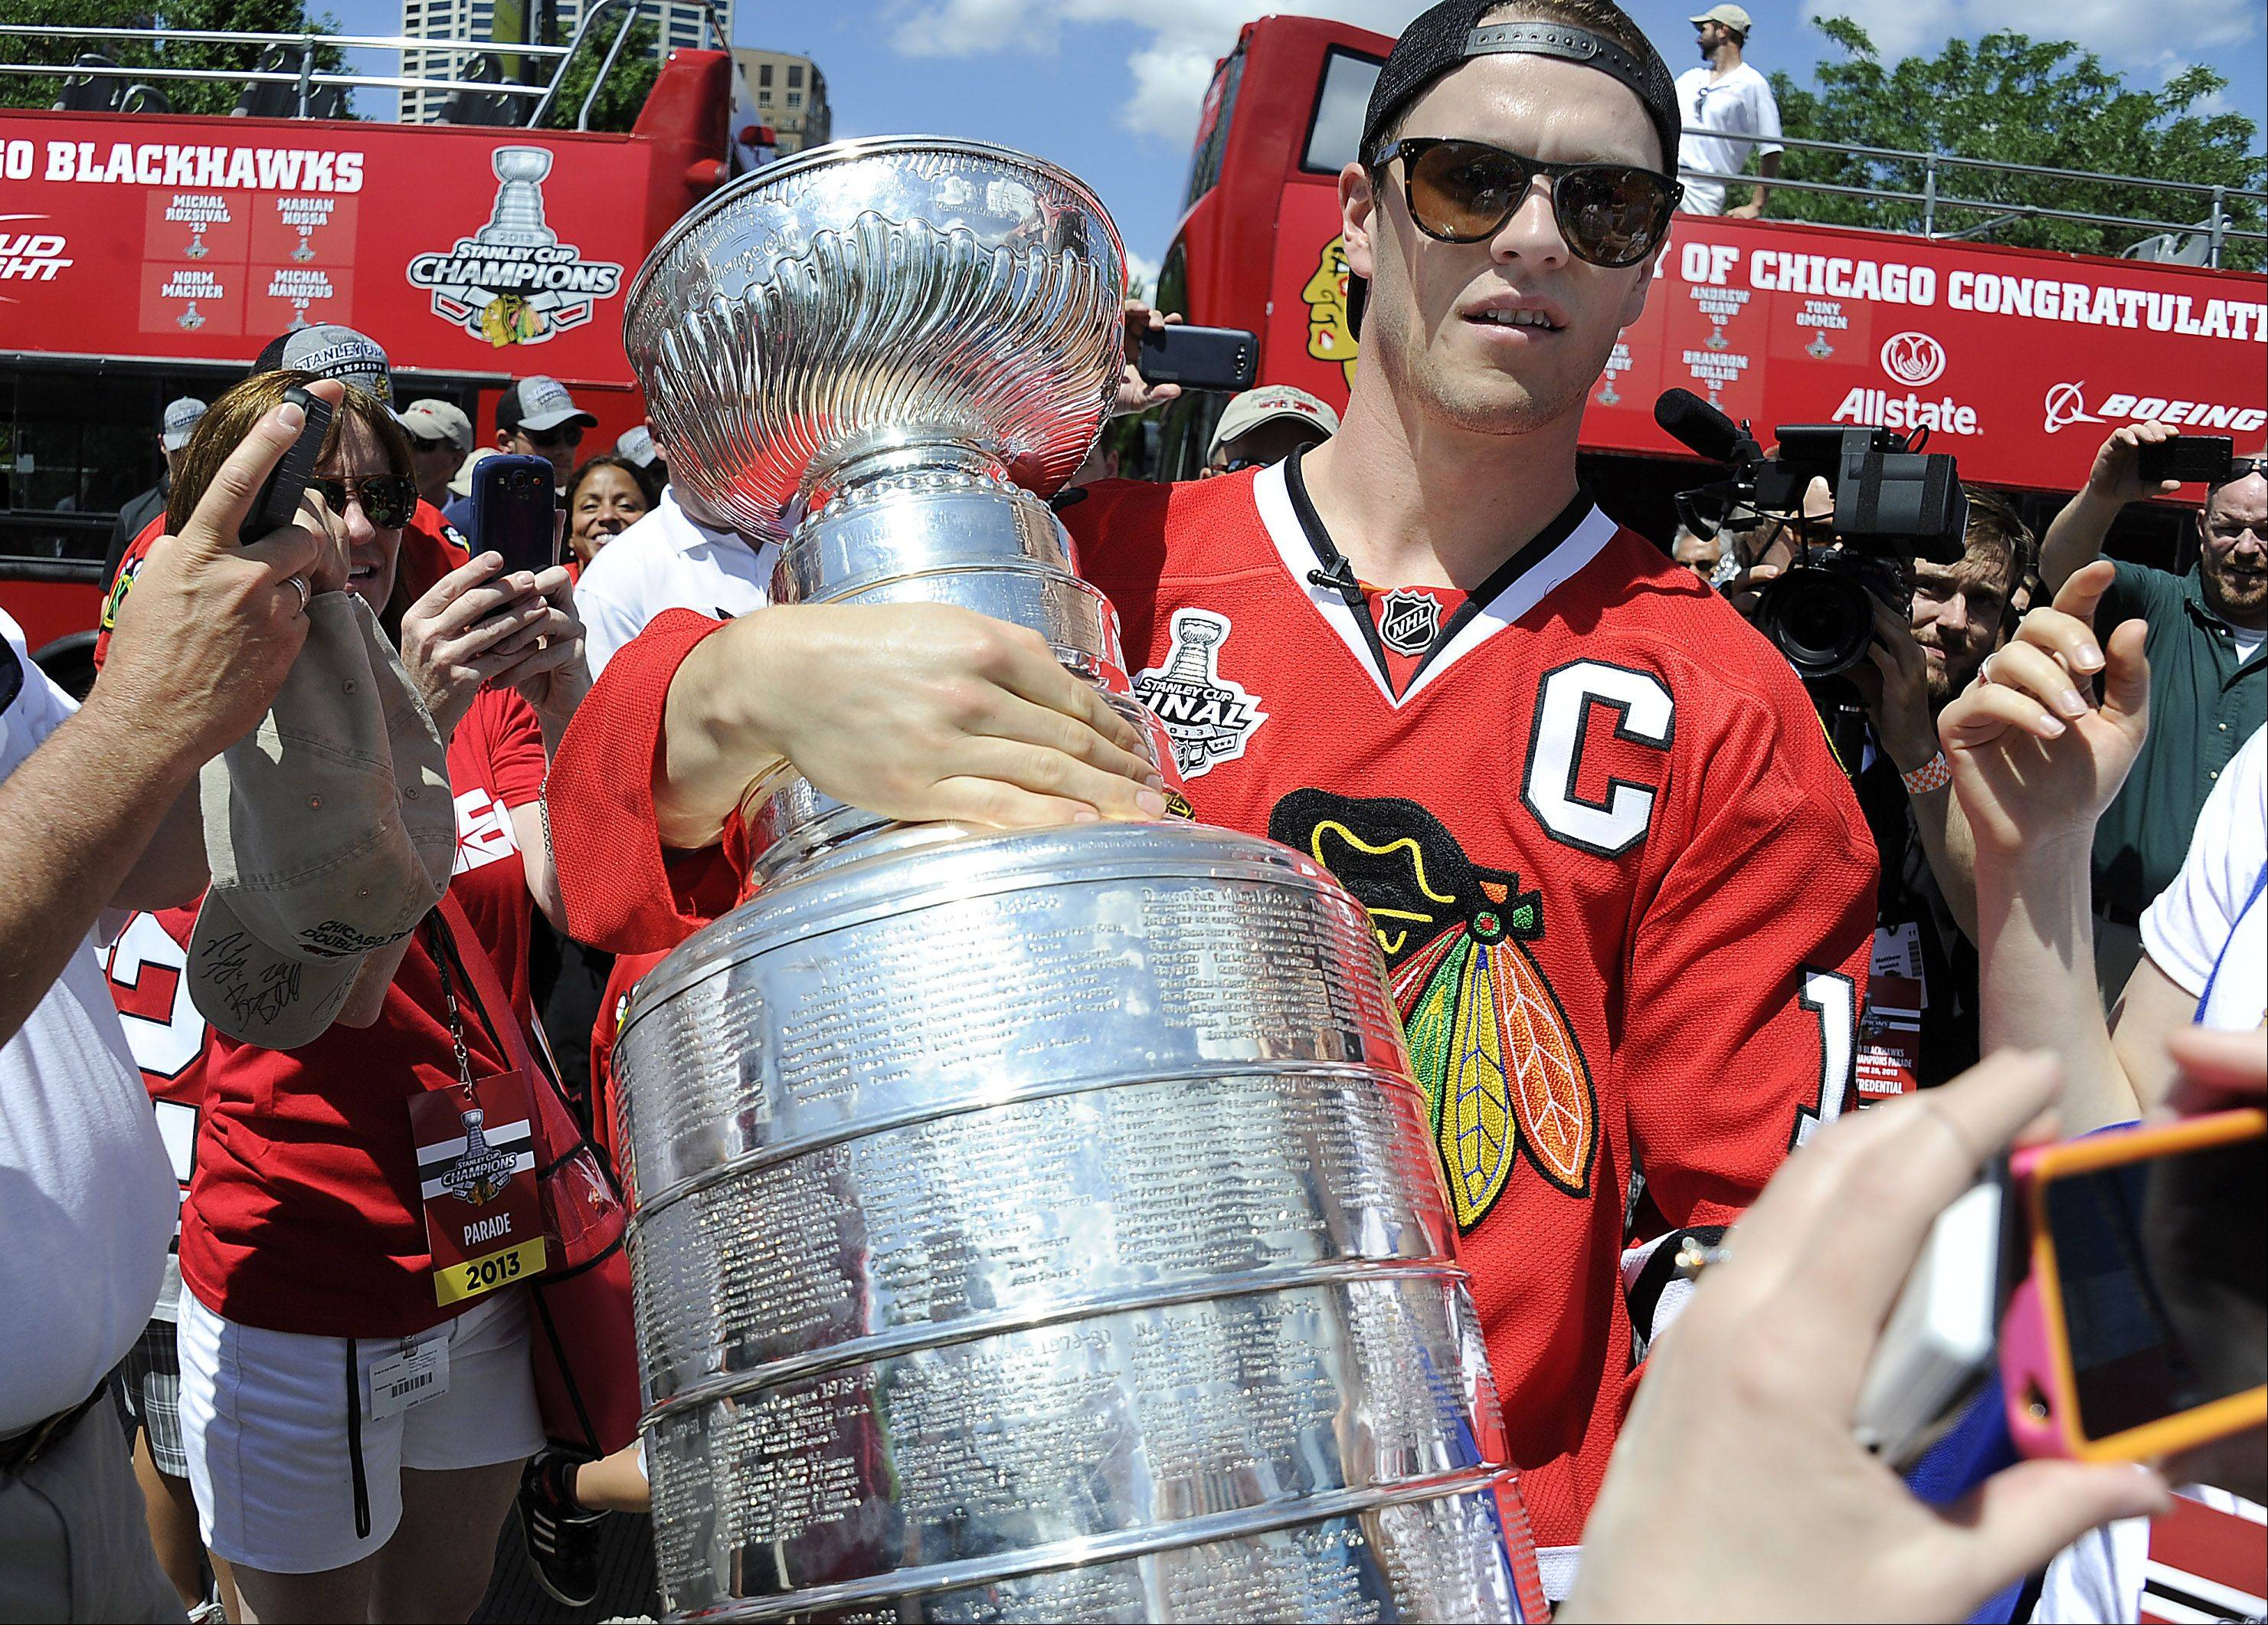 Chicago Blackhawks captain Jonathan Toews carries off the Stanley Cup from the players bus as they prepare to show Blackhawks fans at Grant Park in Chicago.